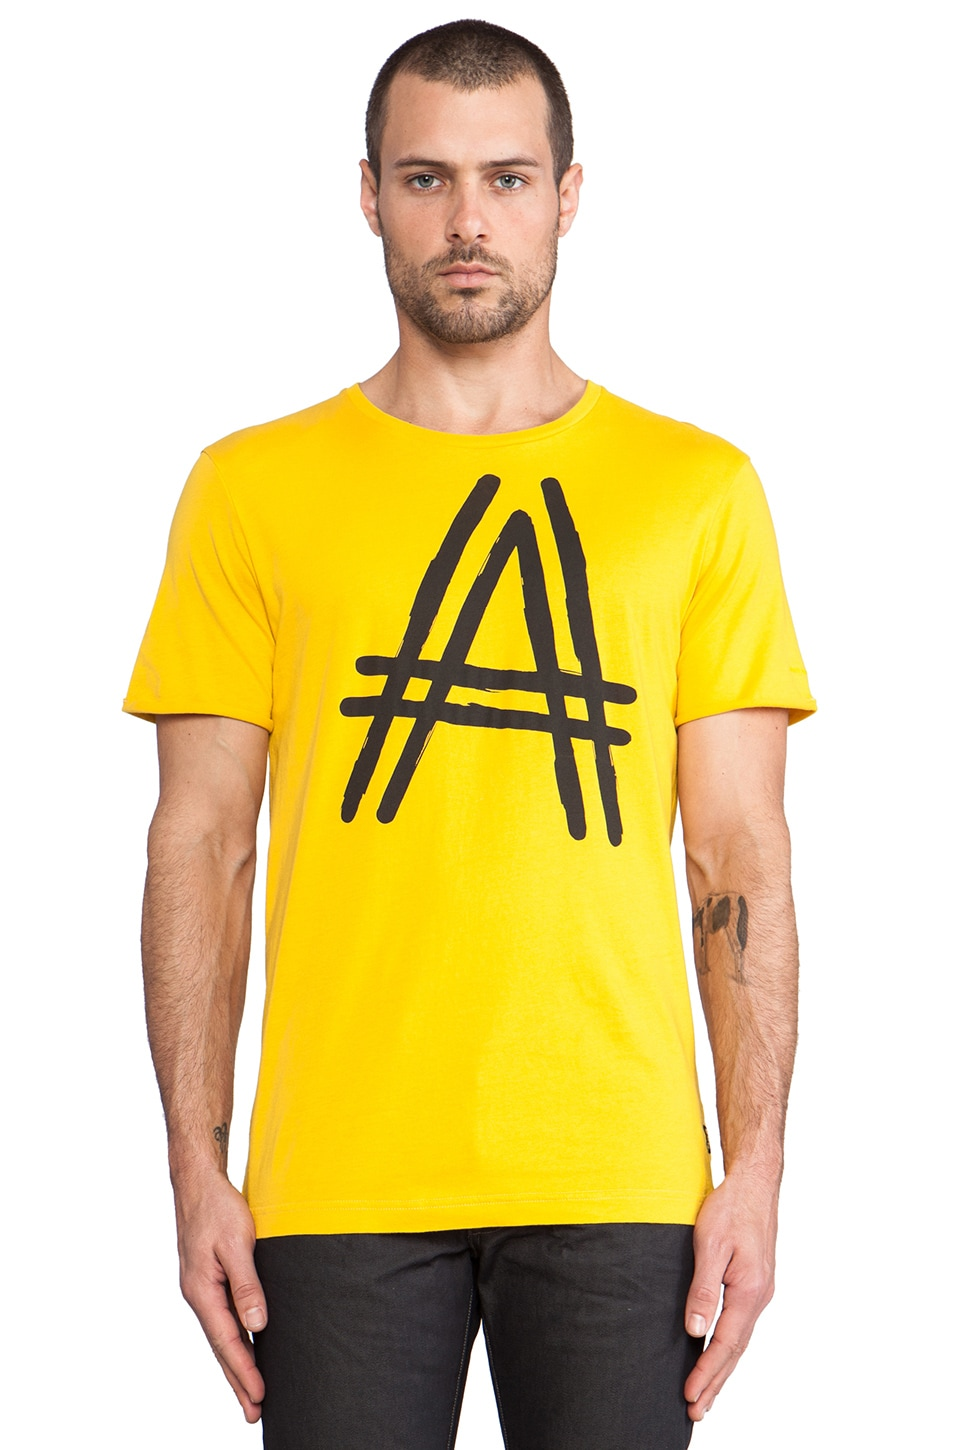 G-Star 25th Anniversary The A-Crotch T-Shirt in Flock Print